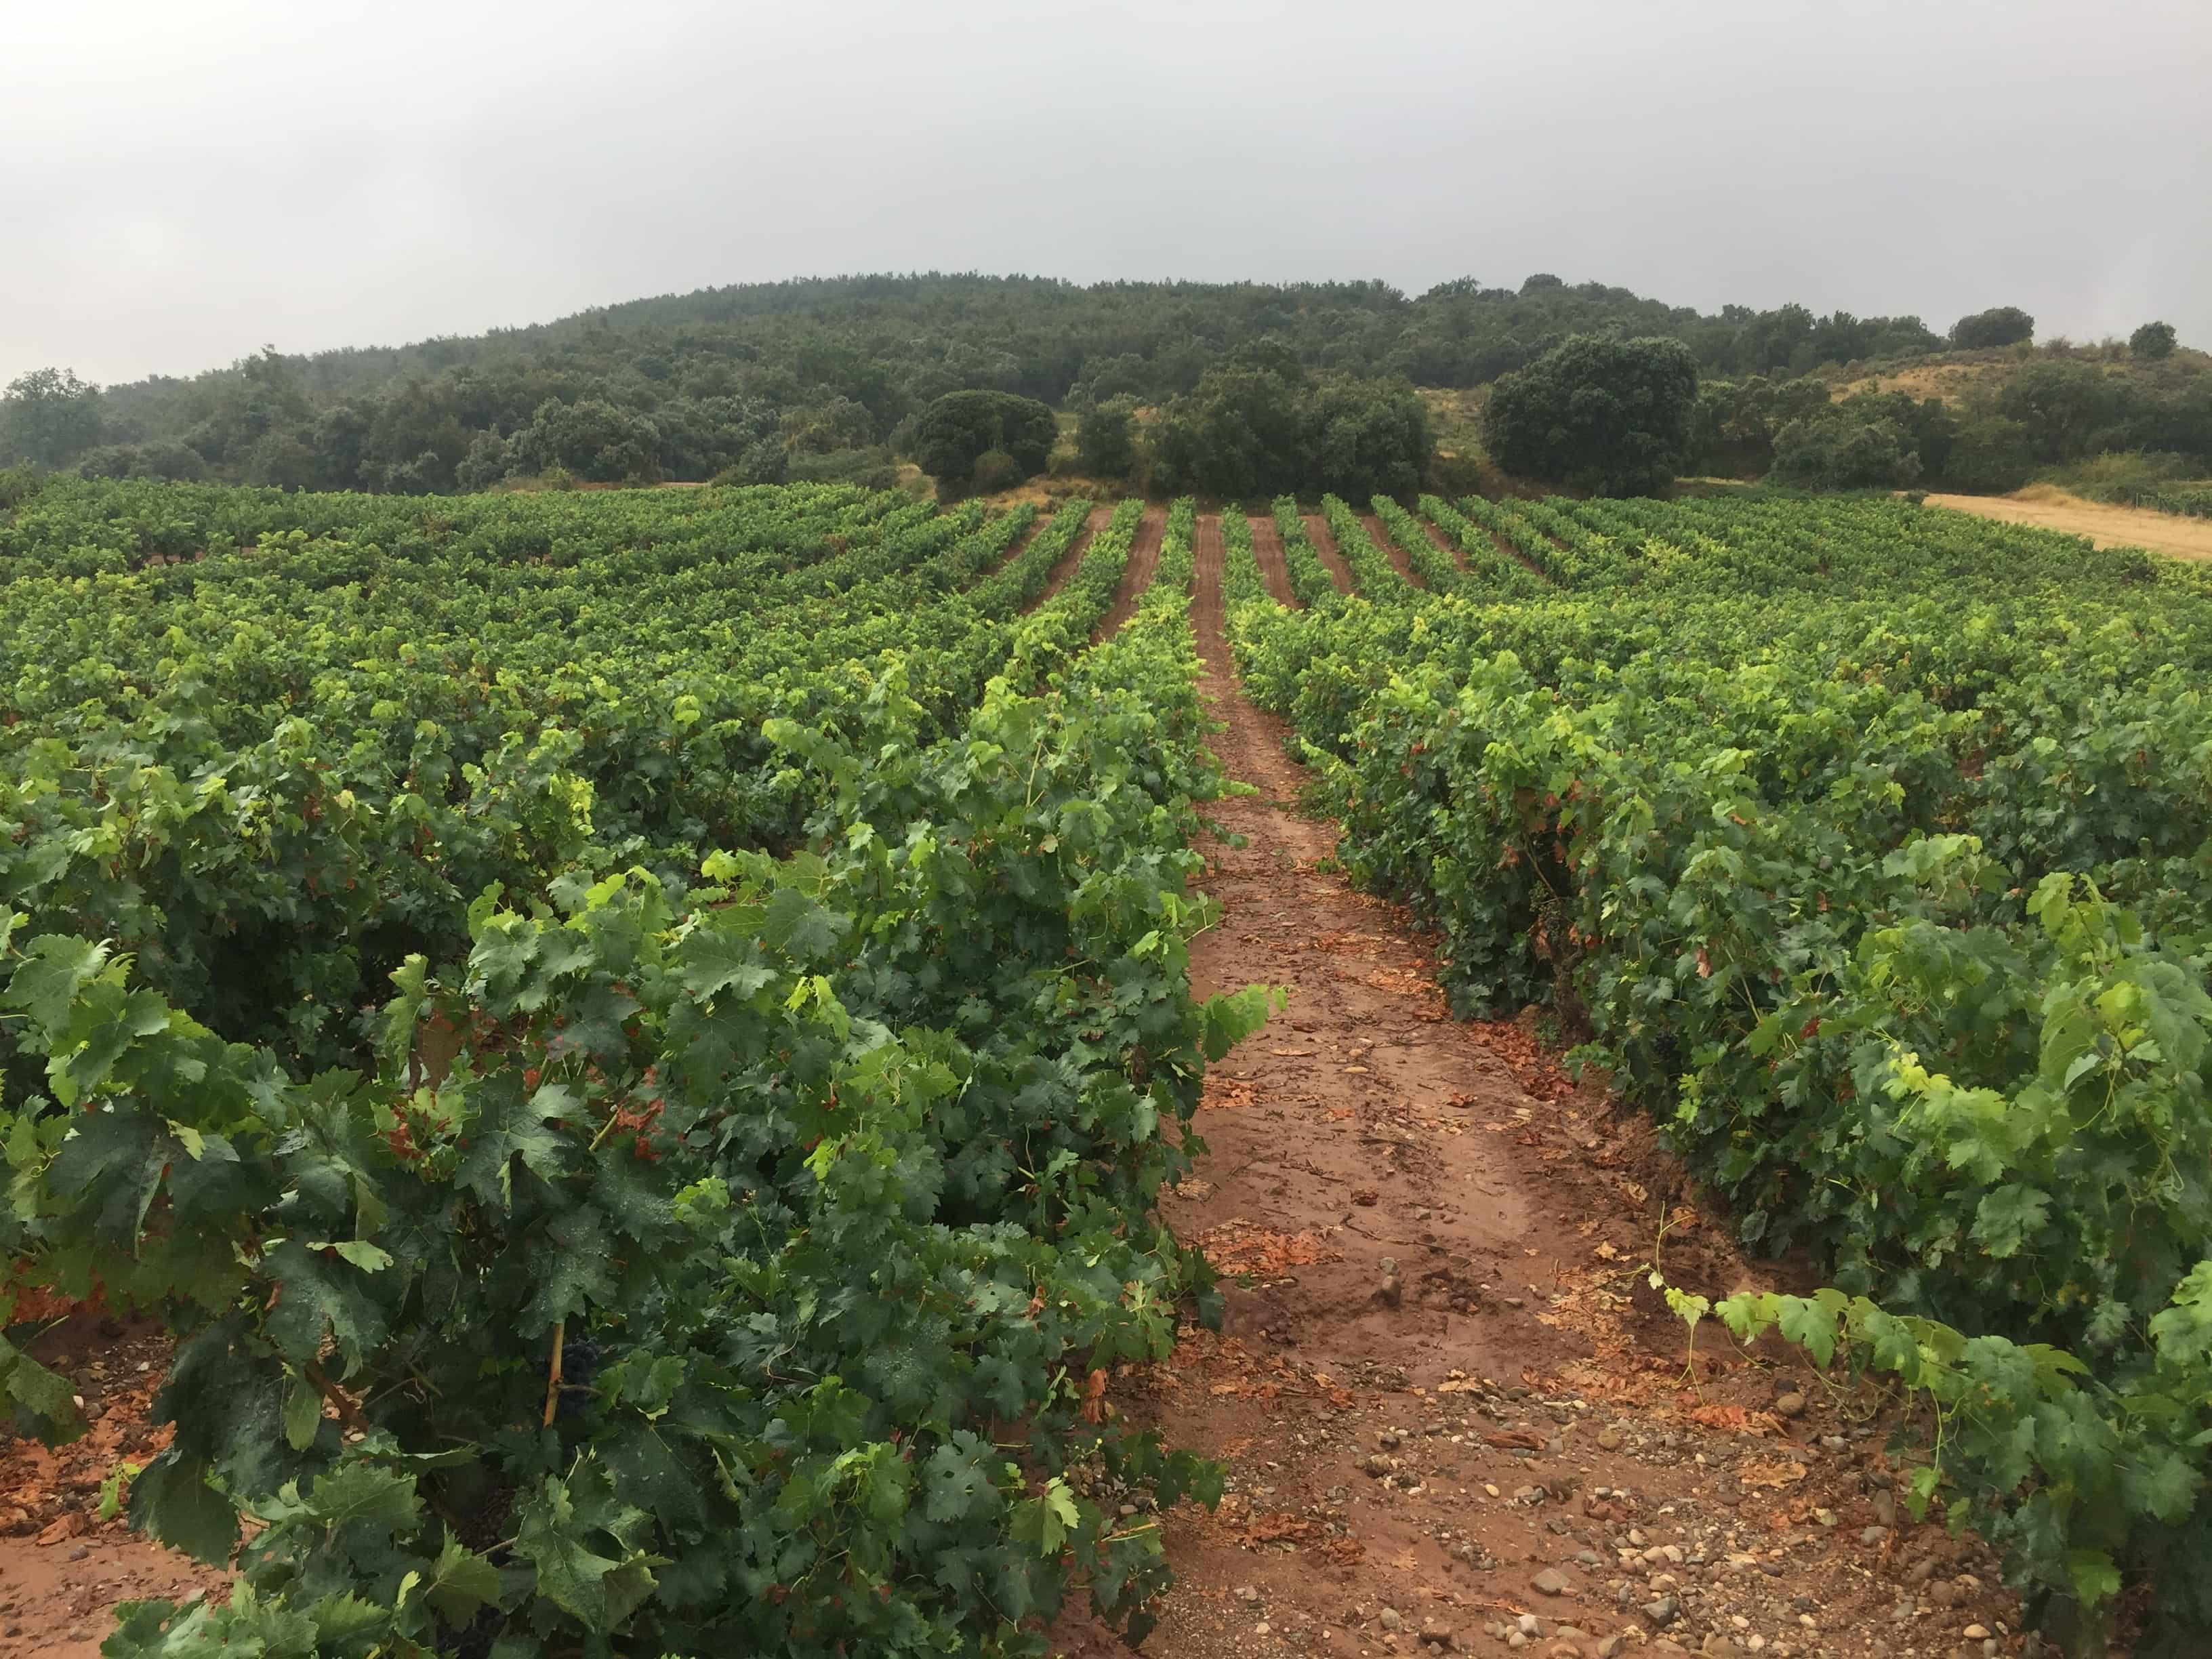 Refreshing rain in the vineyards